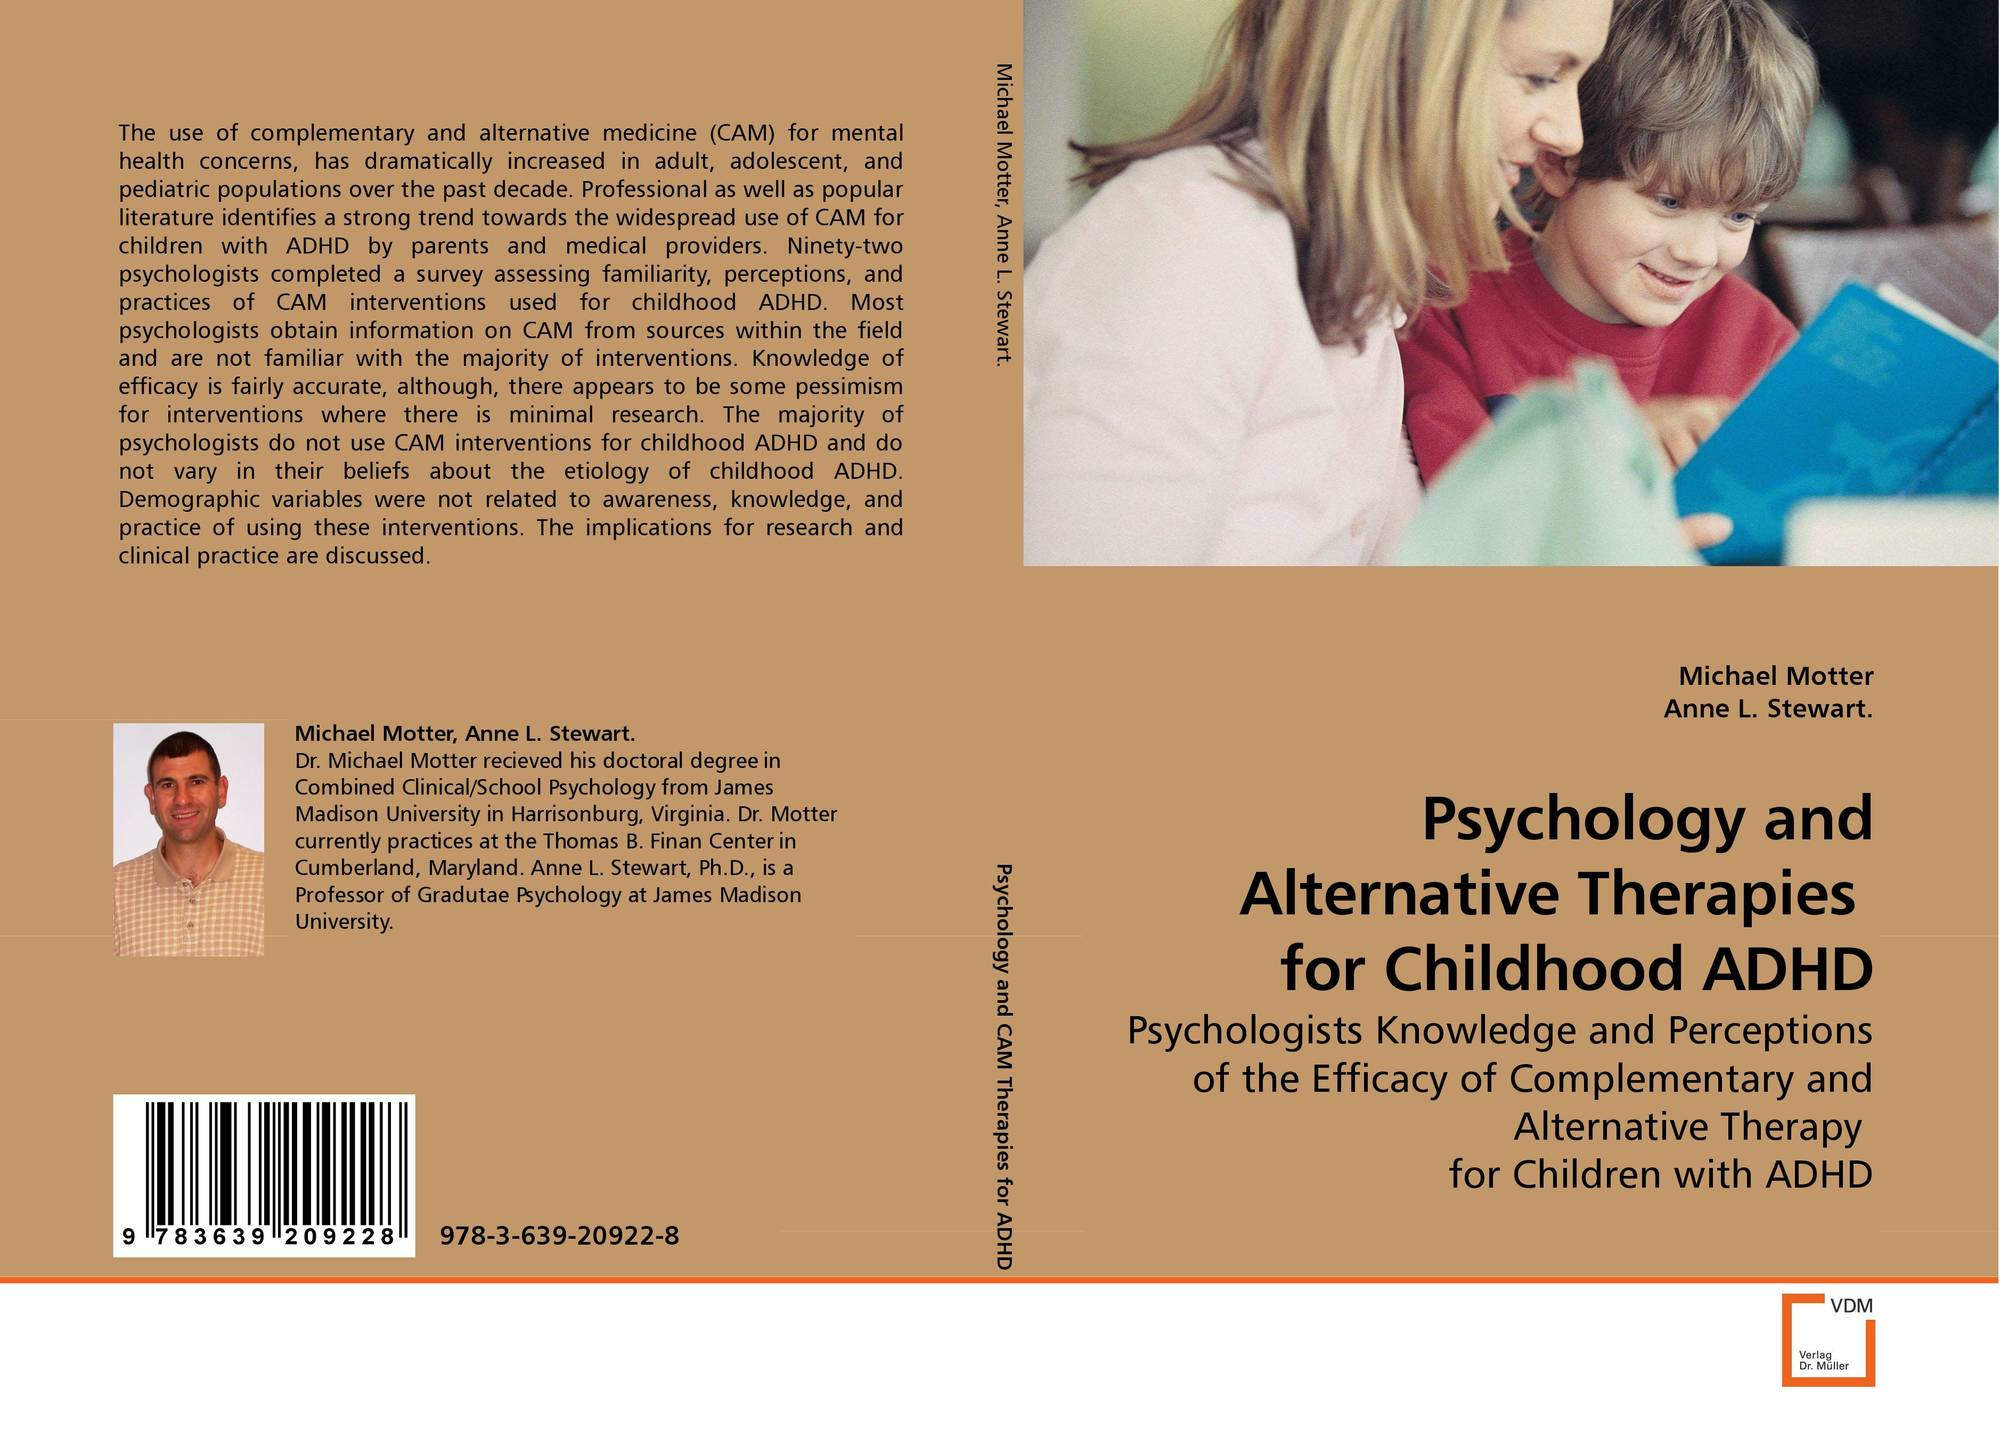 an analysis of the fact or fiction on alternative therapy websites There's an illness that has been documented by poets for centuries its symptoms include a flushed face, increased heart rate, appetite loss, restlessness and daydreaming it's spring fever, that wonderfully amorphous disease we all recognize come april and may.